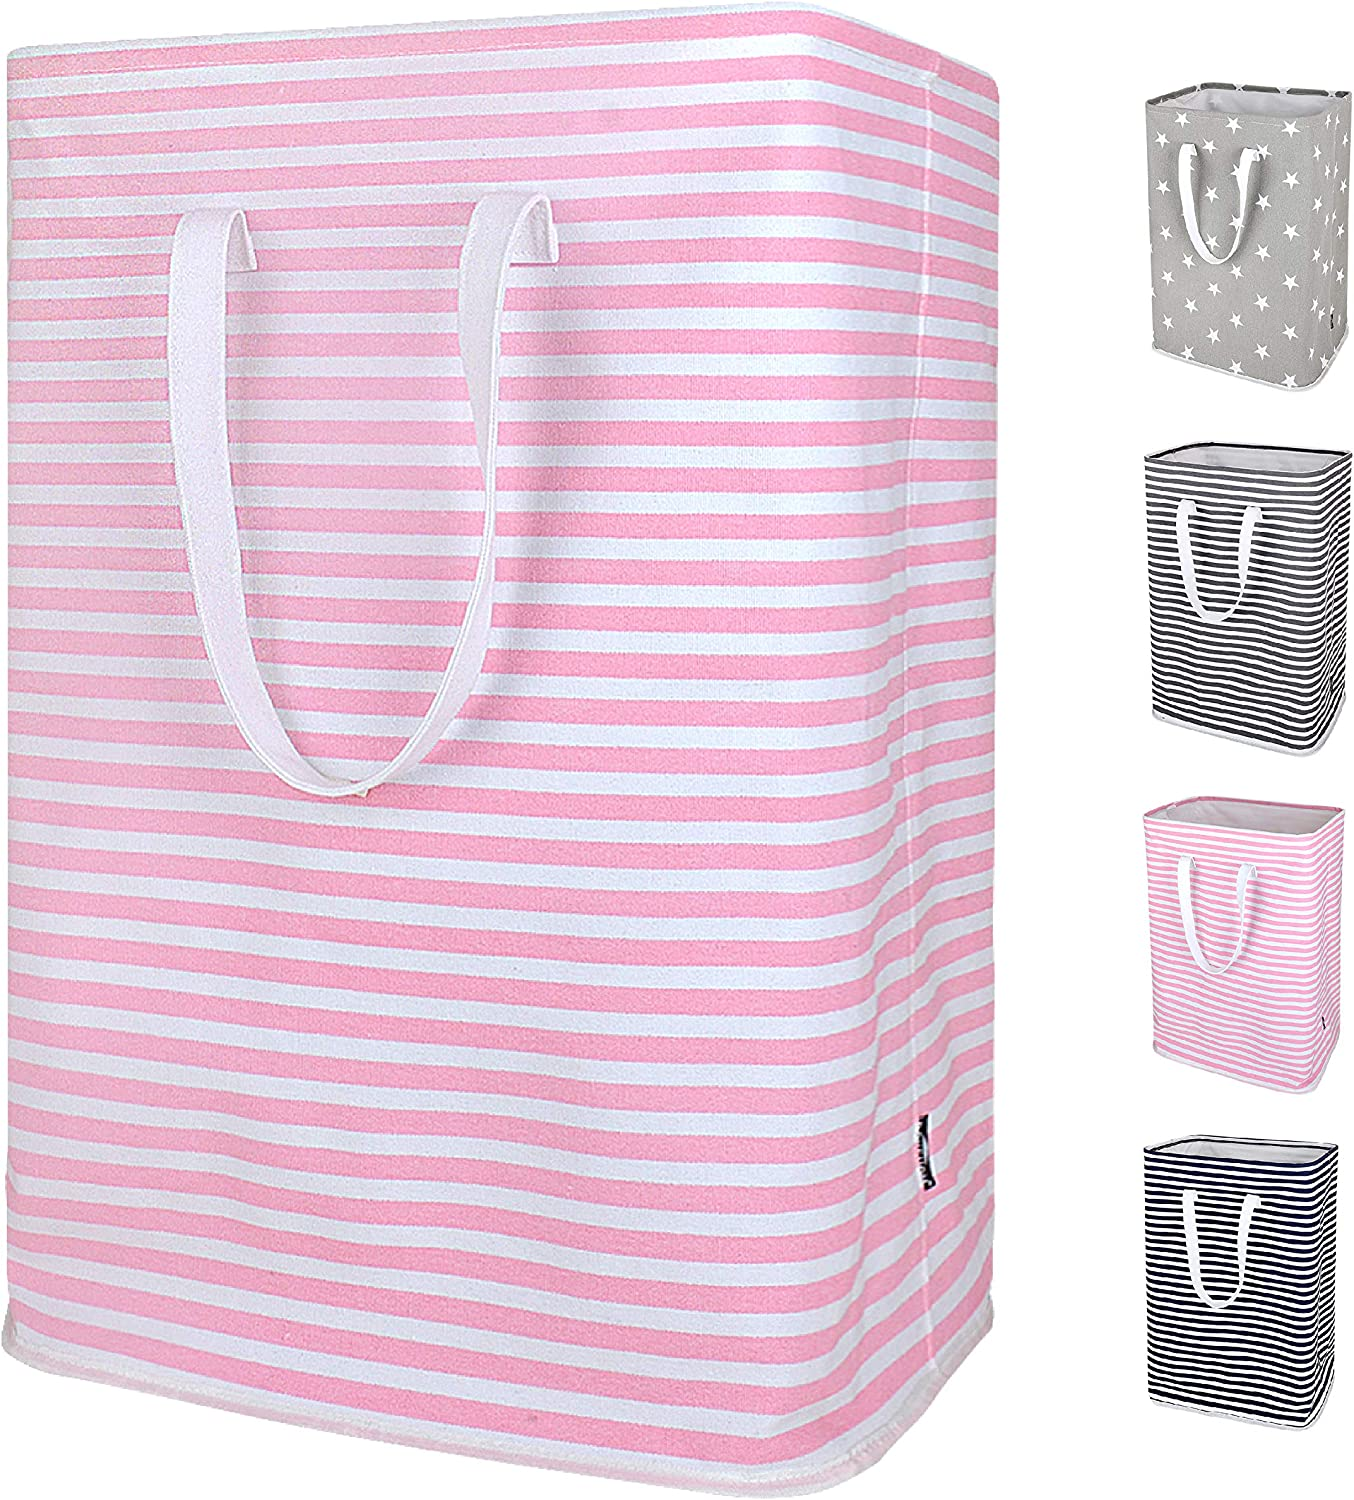 DOKEHOM 24-Inches Thickened X-Large Laundry Basket with Drawstring, Waterproof Square Cube Cotton Linen Collapsible Storage Basket (Pink Strips, XL)